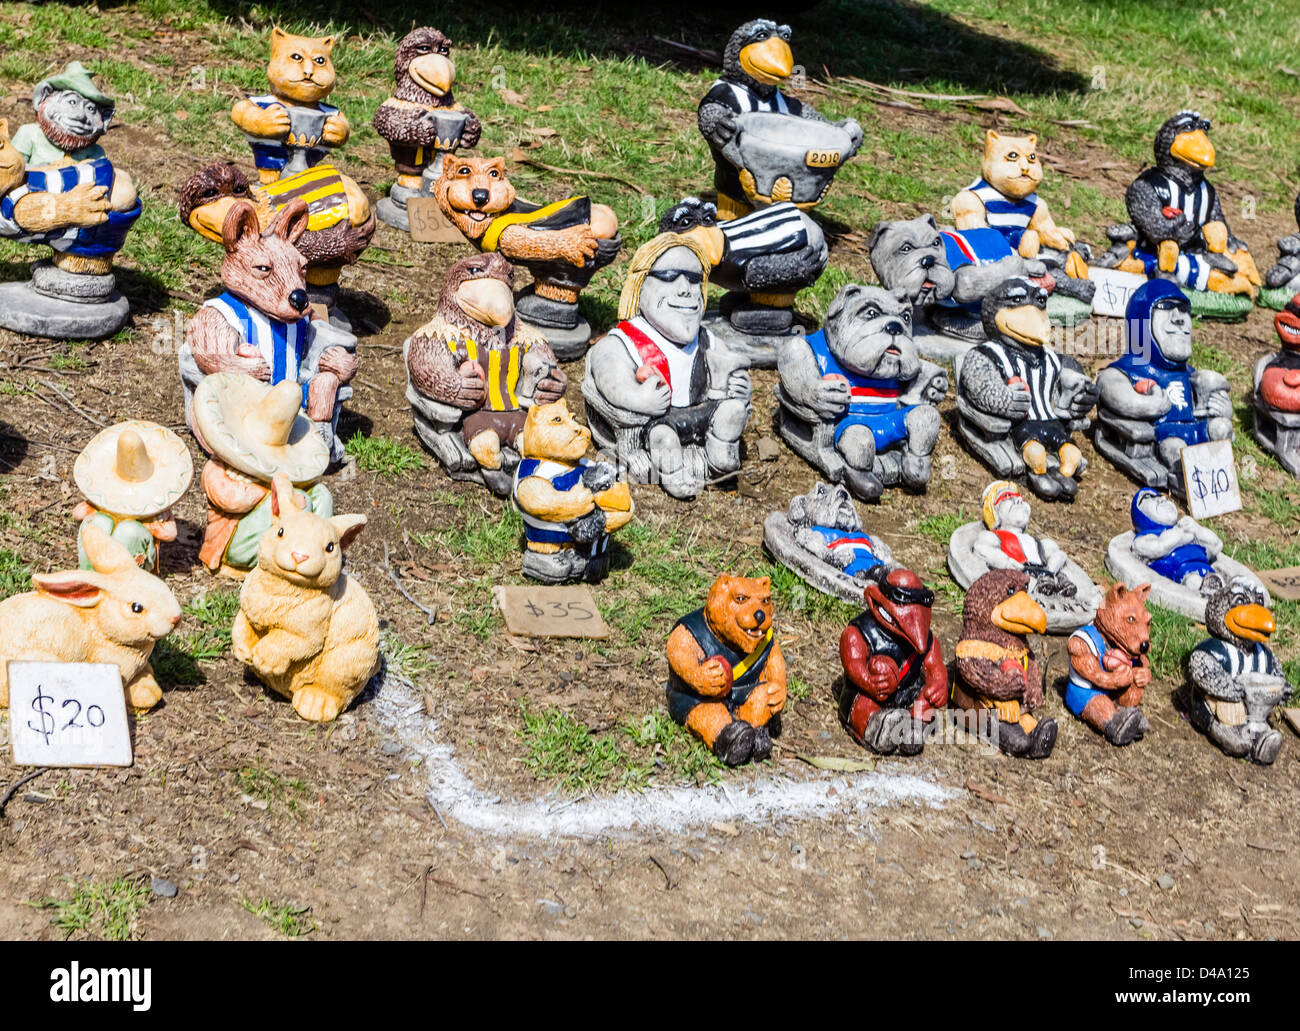 Garden Gnomes On Sale: Garden Gnomes And Concrete Figurines On Sale At The